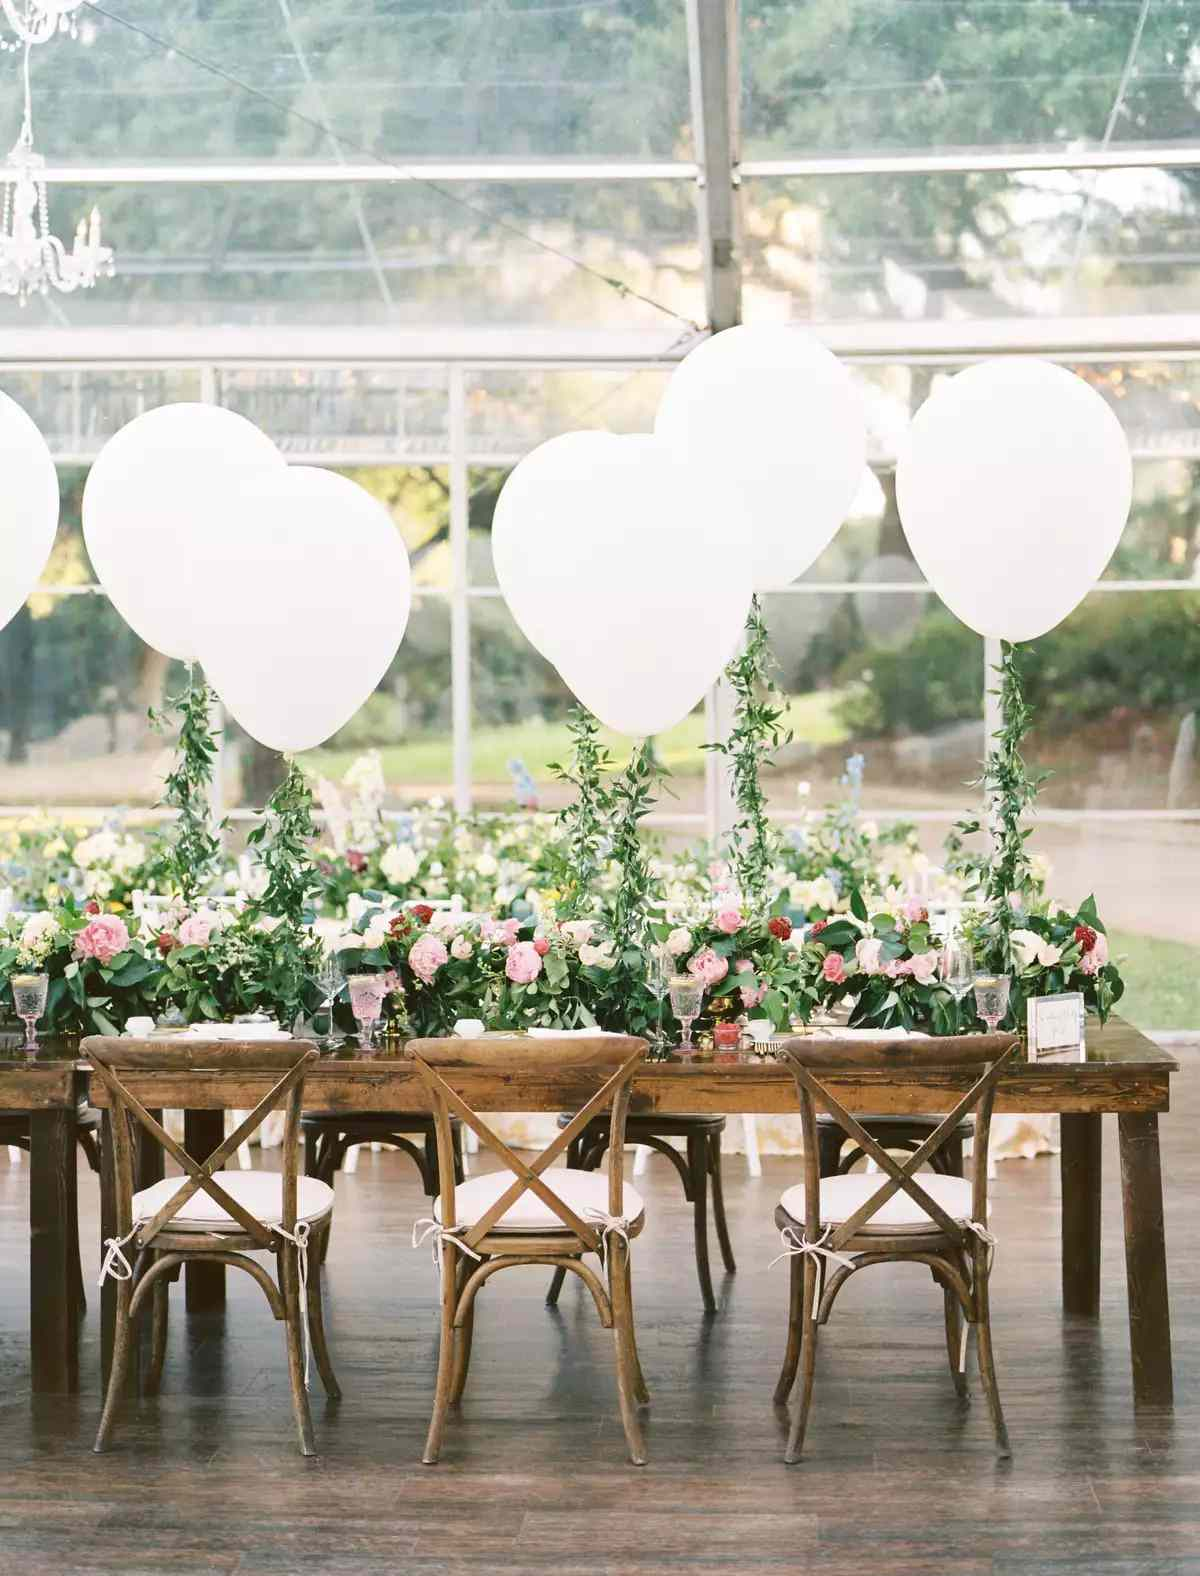 White Balloons on Reception Table